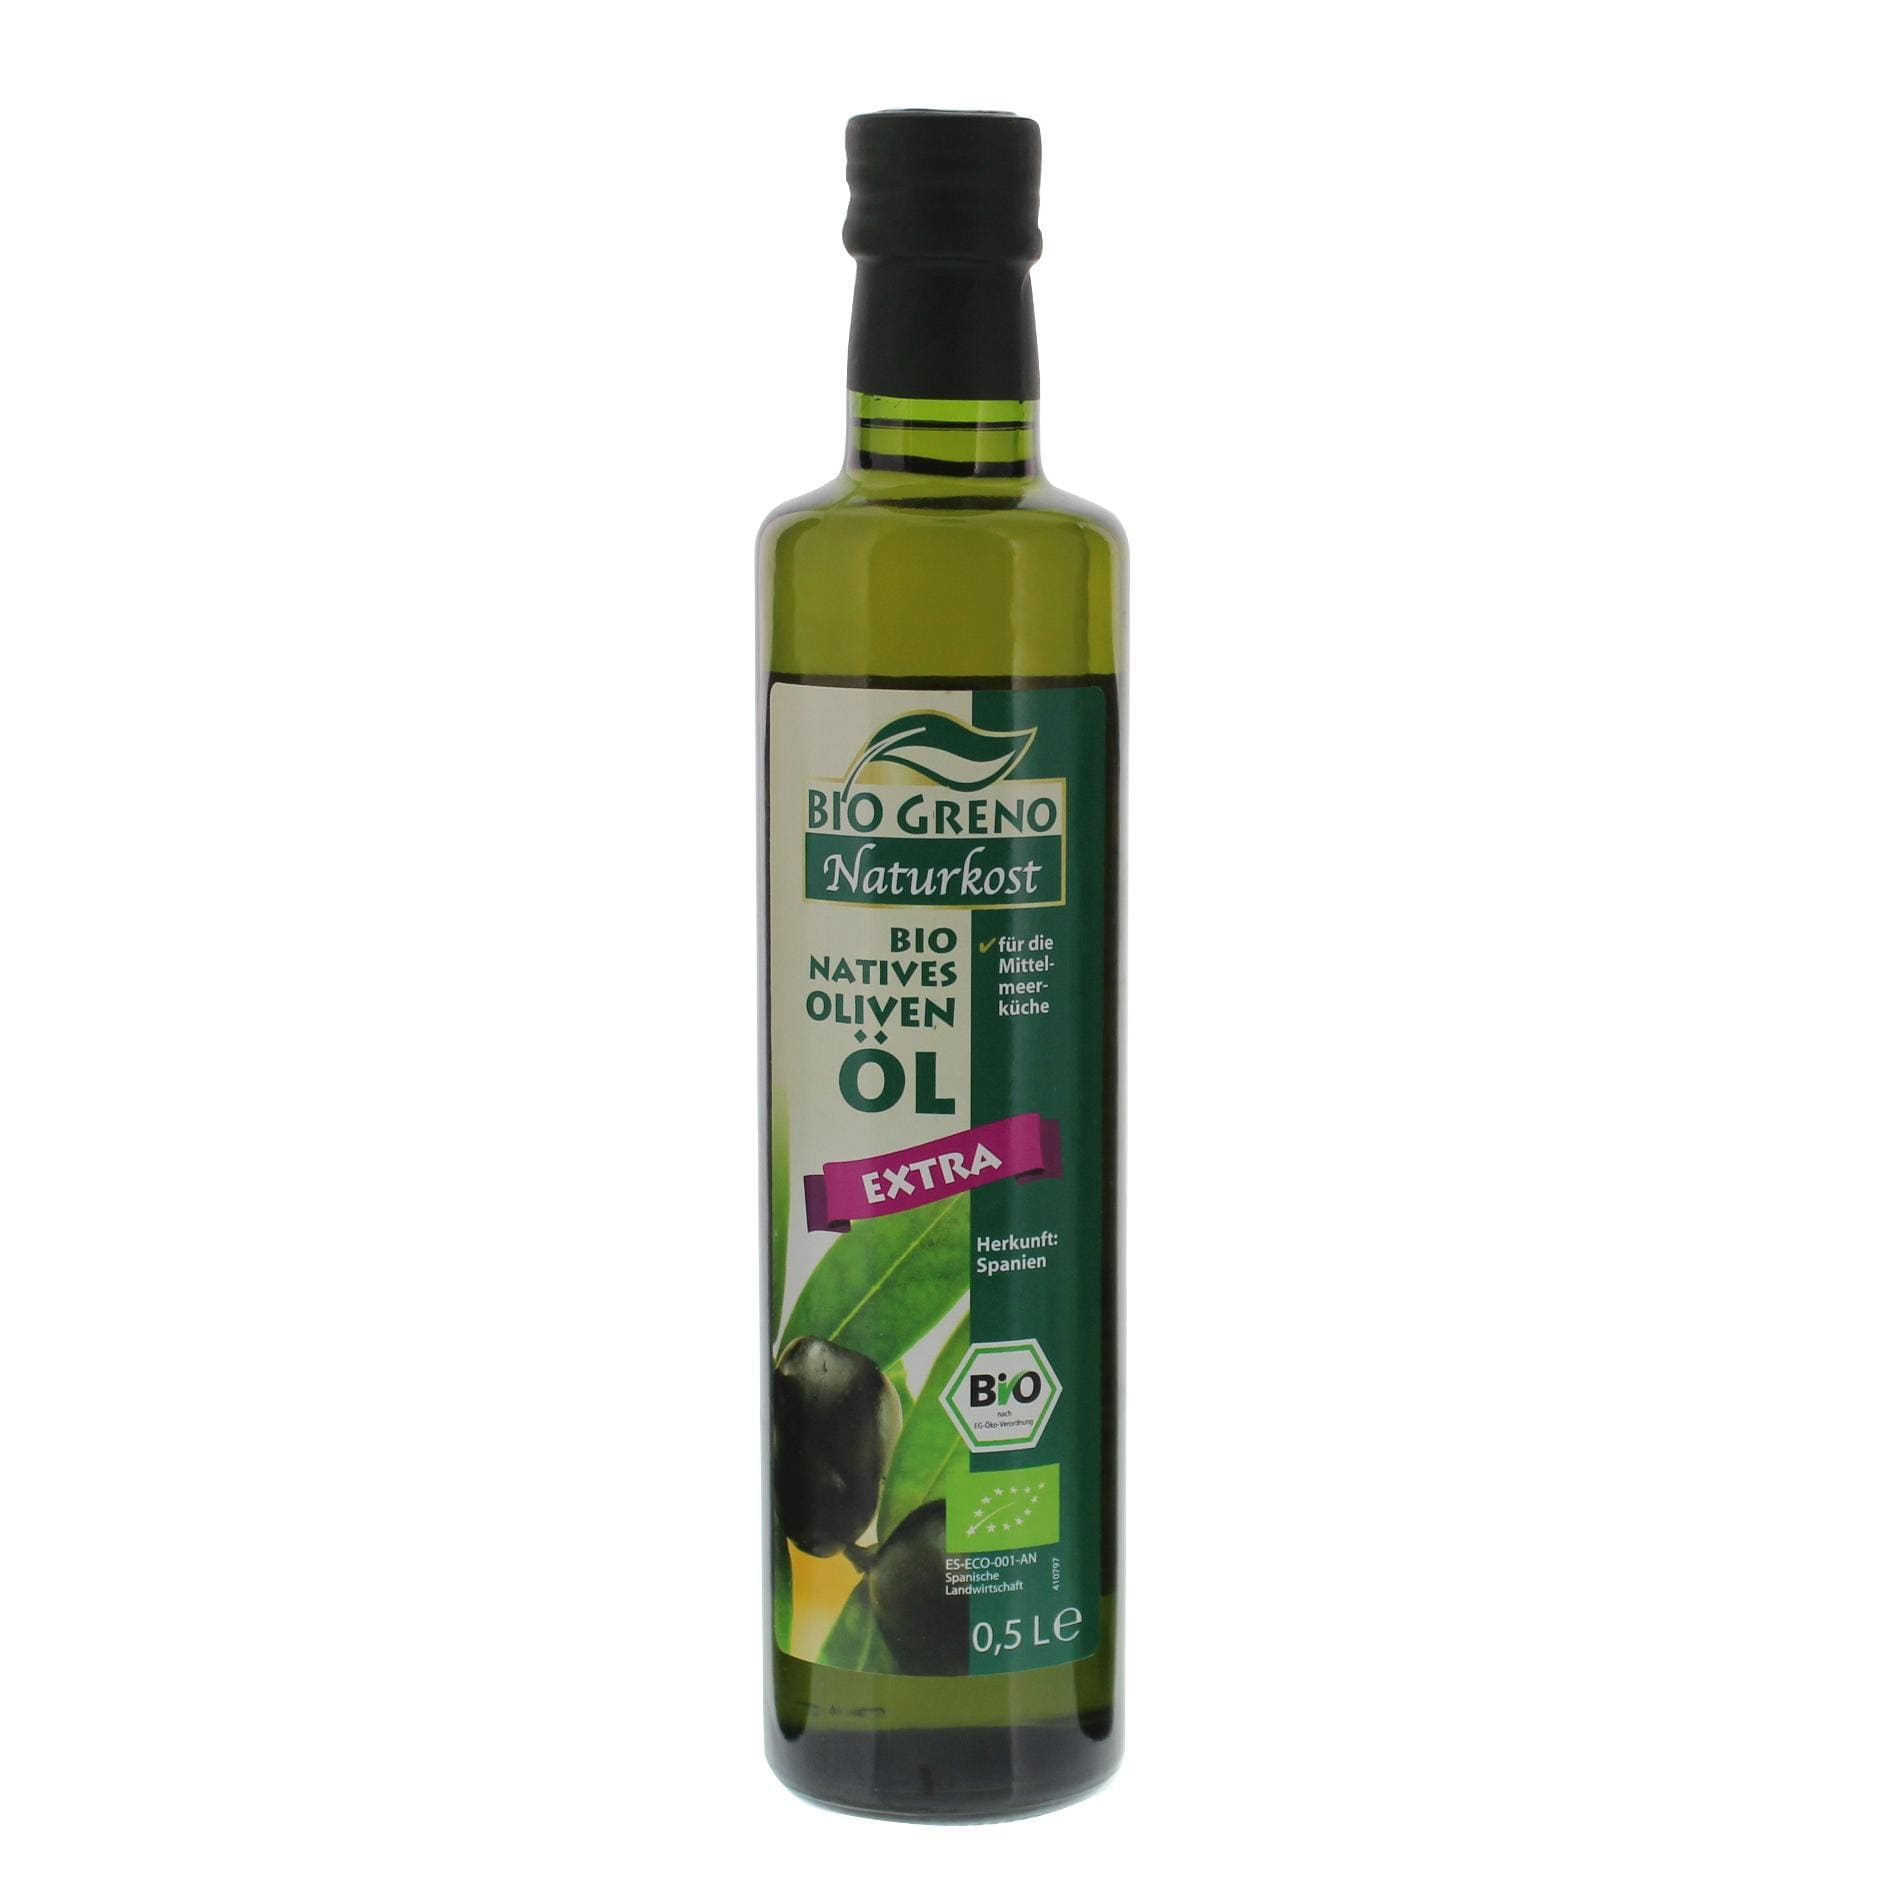 Bio Greno Bio Natives Olivenöl extra 0,5l